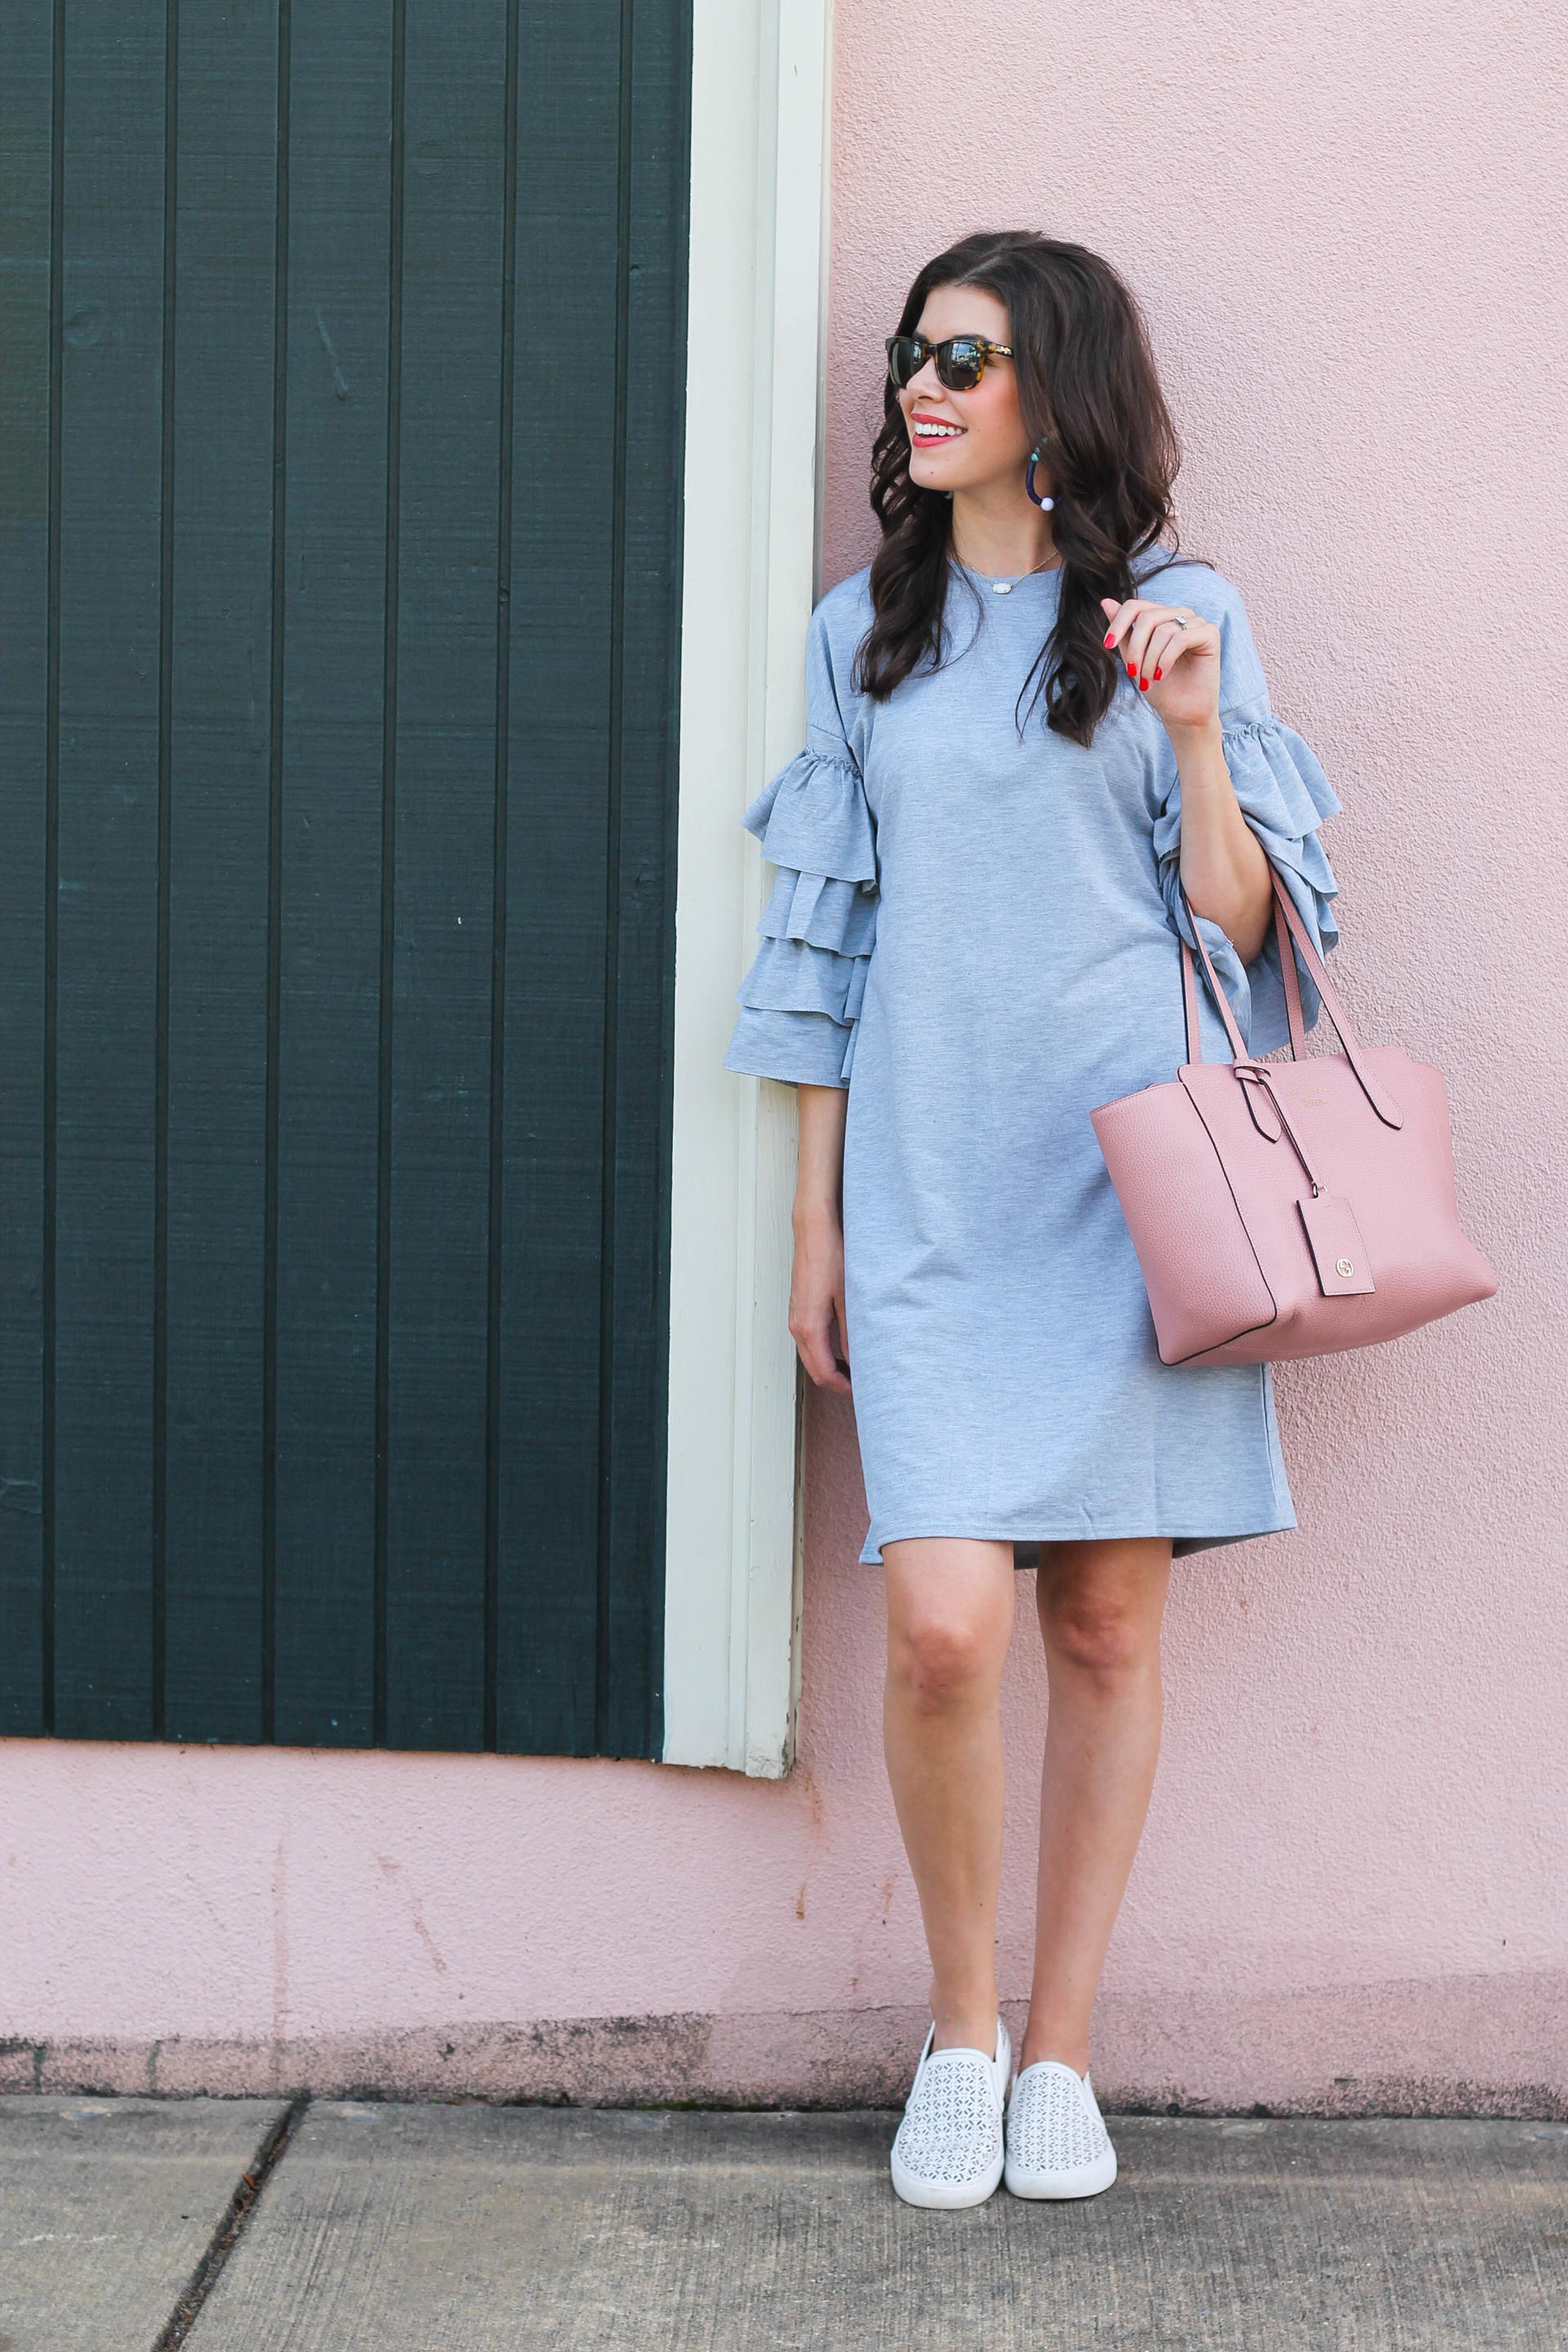 377f74df12a Ruffled Sleeve Dress - Spring Ruffle Sleeve Dress by New York fashion  blogger Style Waltz ...